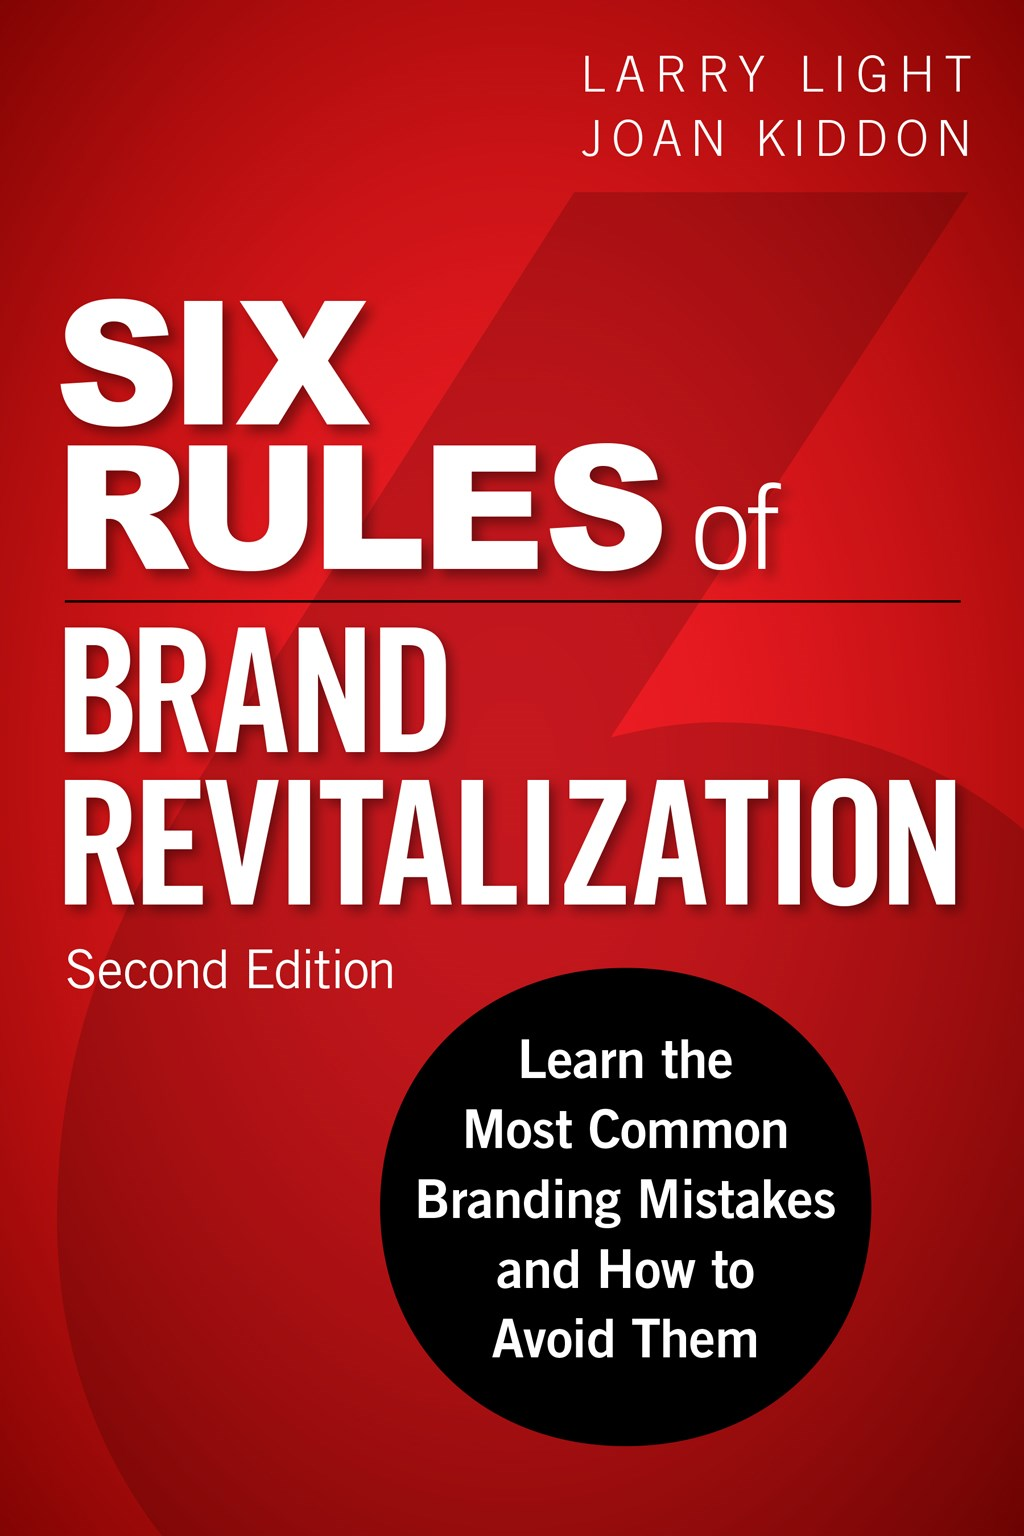 Six Rules of Brand Revitalization, Second Edition: Learn the Most Common Branding Mistakes and How to Avoid Them, 2nd Edition